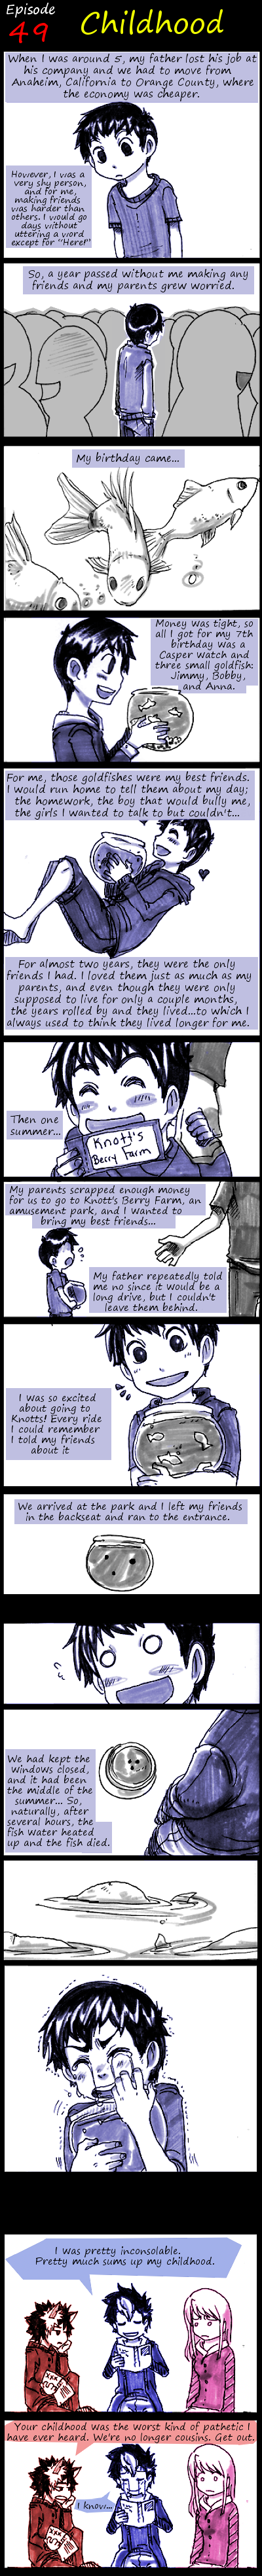 Aww Dude...Ep 49 [Childhood] by AmukaUroy